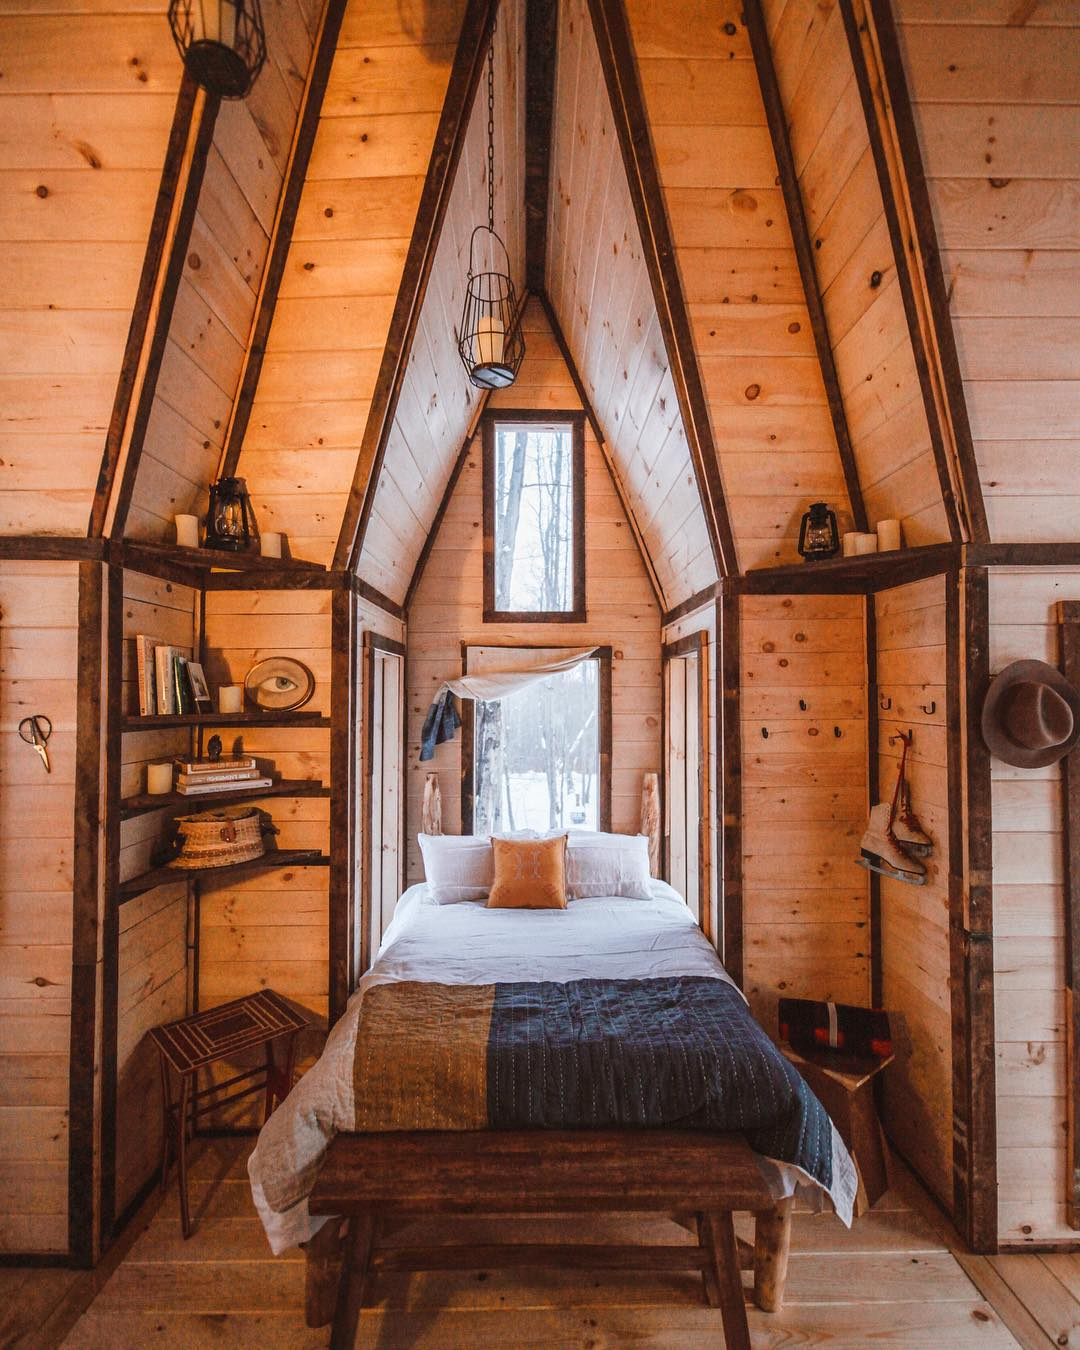 Crosspire Cabin - This dreamy cabin in the Catskill Mountains was designed by Jacob Witzling and built by Scott Pearson and Ethan Hamby. Our friend, Lindsey Bro, worked her magic decorating the inside with perfectly picked goods by so many wonderful makers filling each little nook and cranny...If you look closely, there's even a Makers Workshop flag hanging in the window.